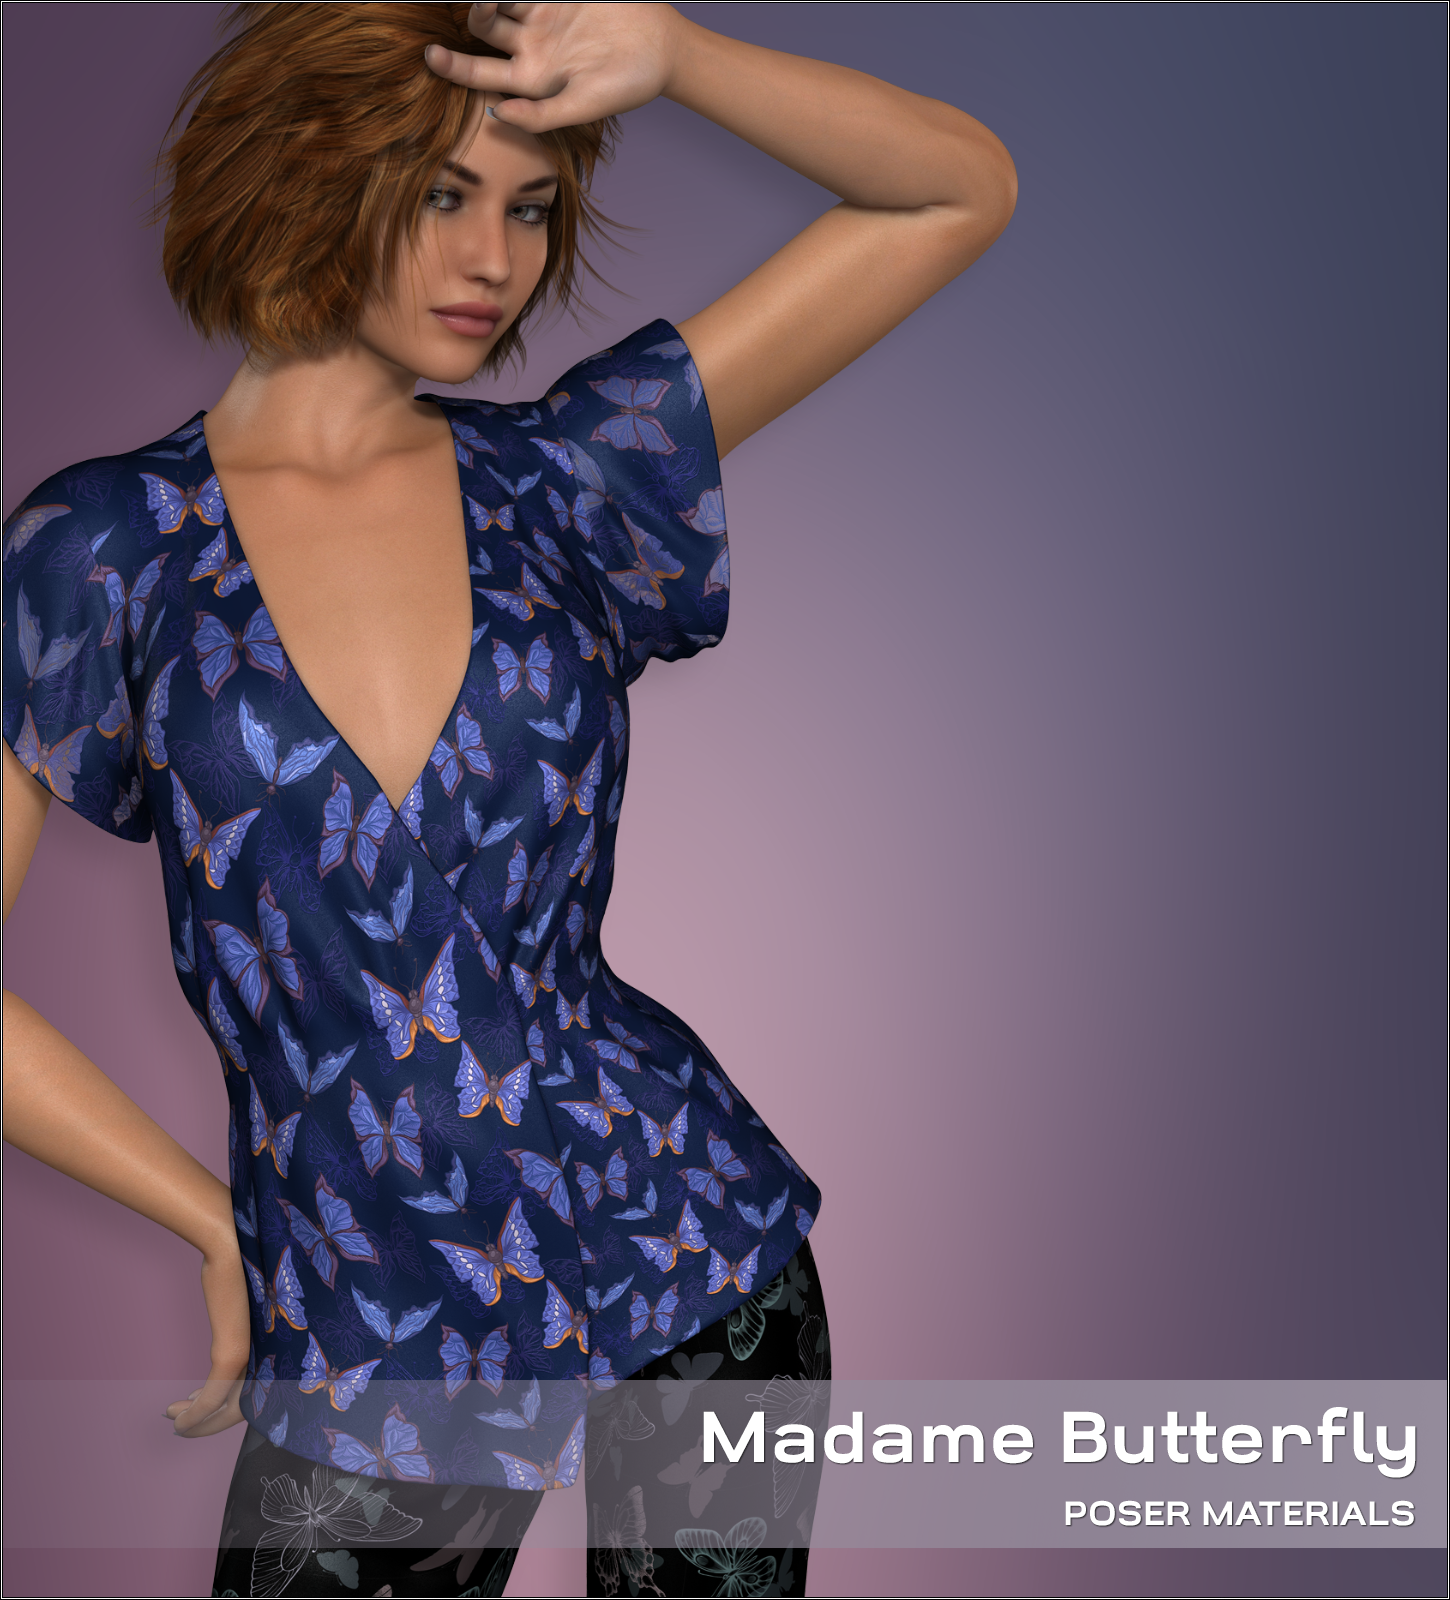 Poser - Madame Butterfly by Atenais